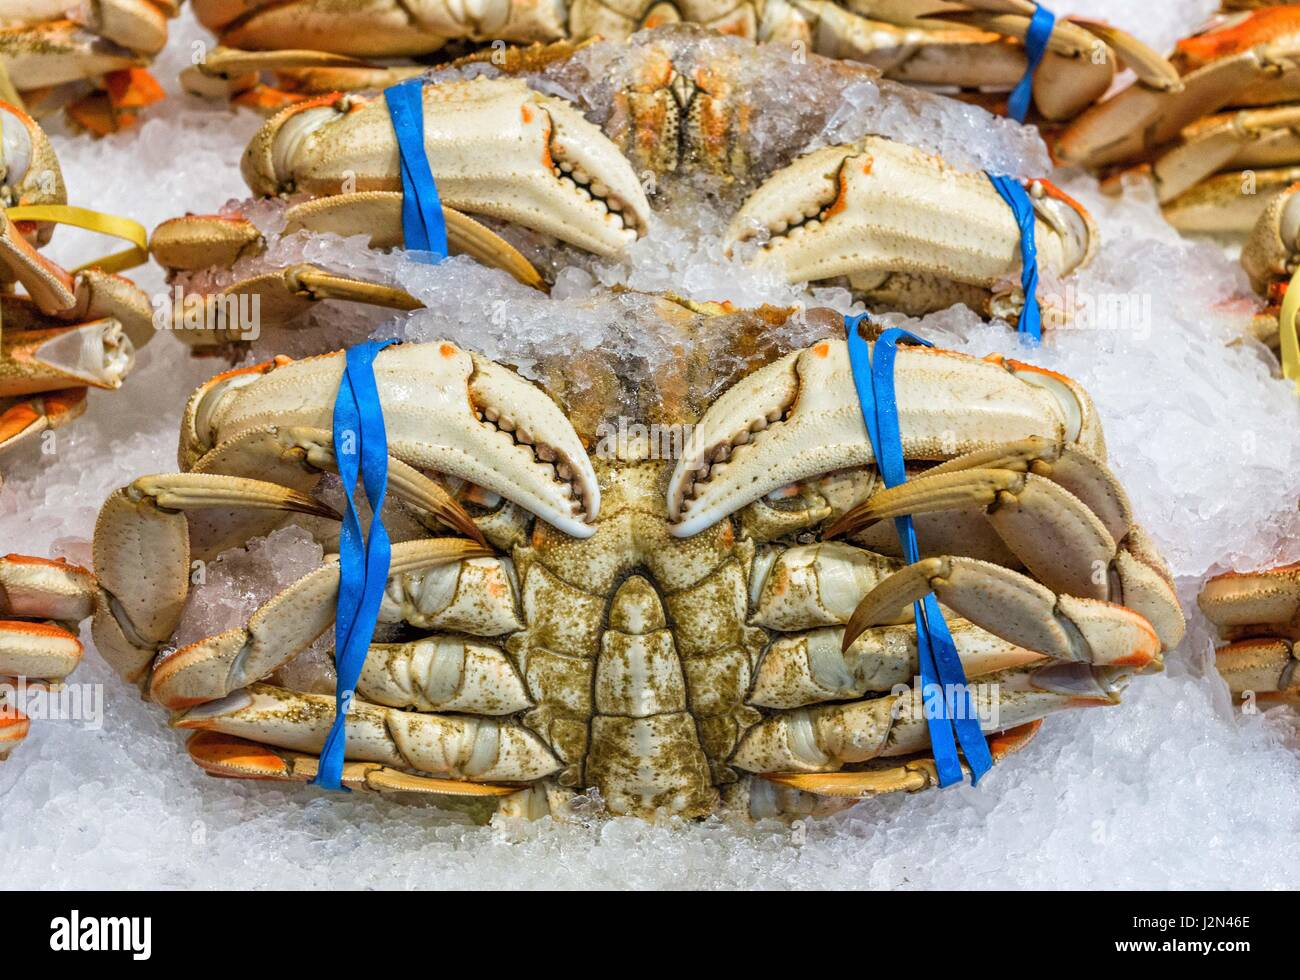 Dungeness, Crab's on sale at a fish market - Stock Image